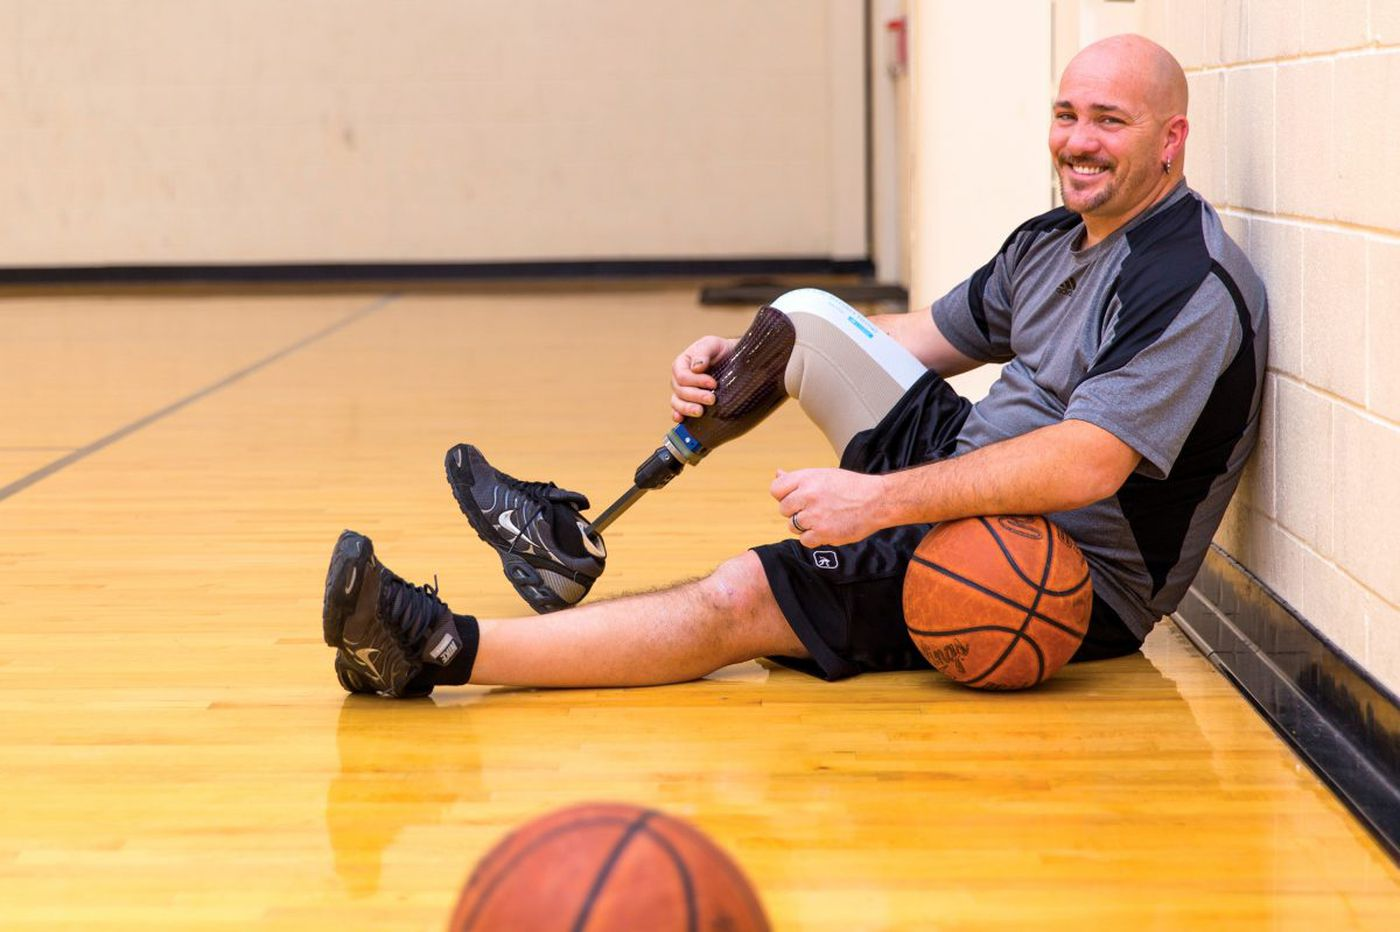 Widener study aims to solve a prostheses problem: sweat